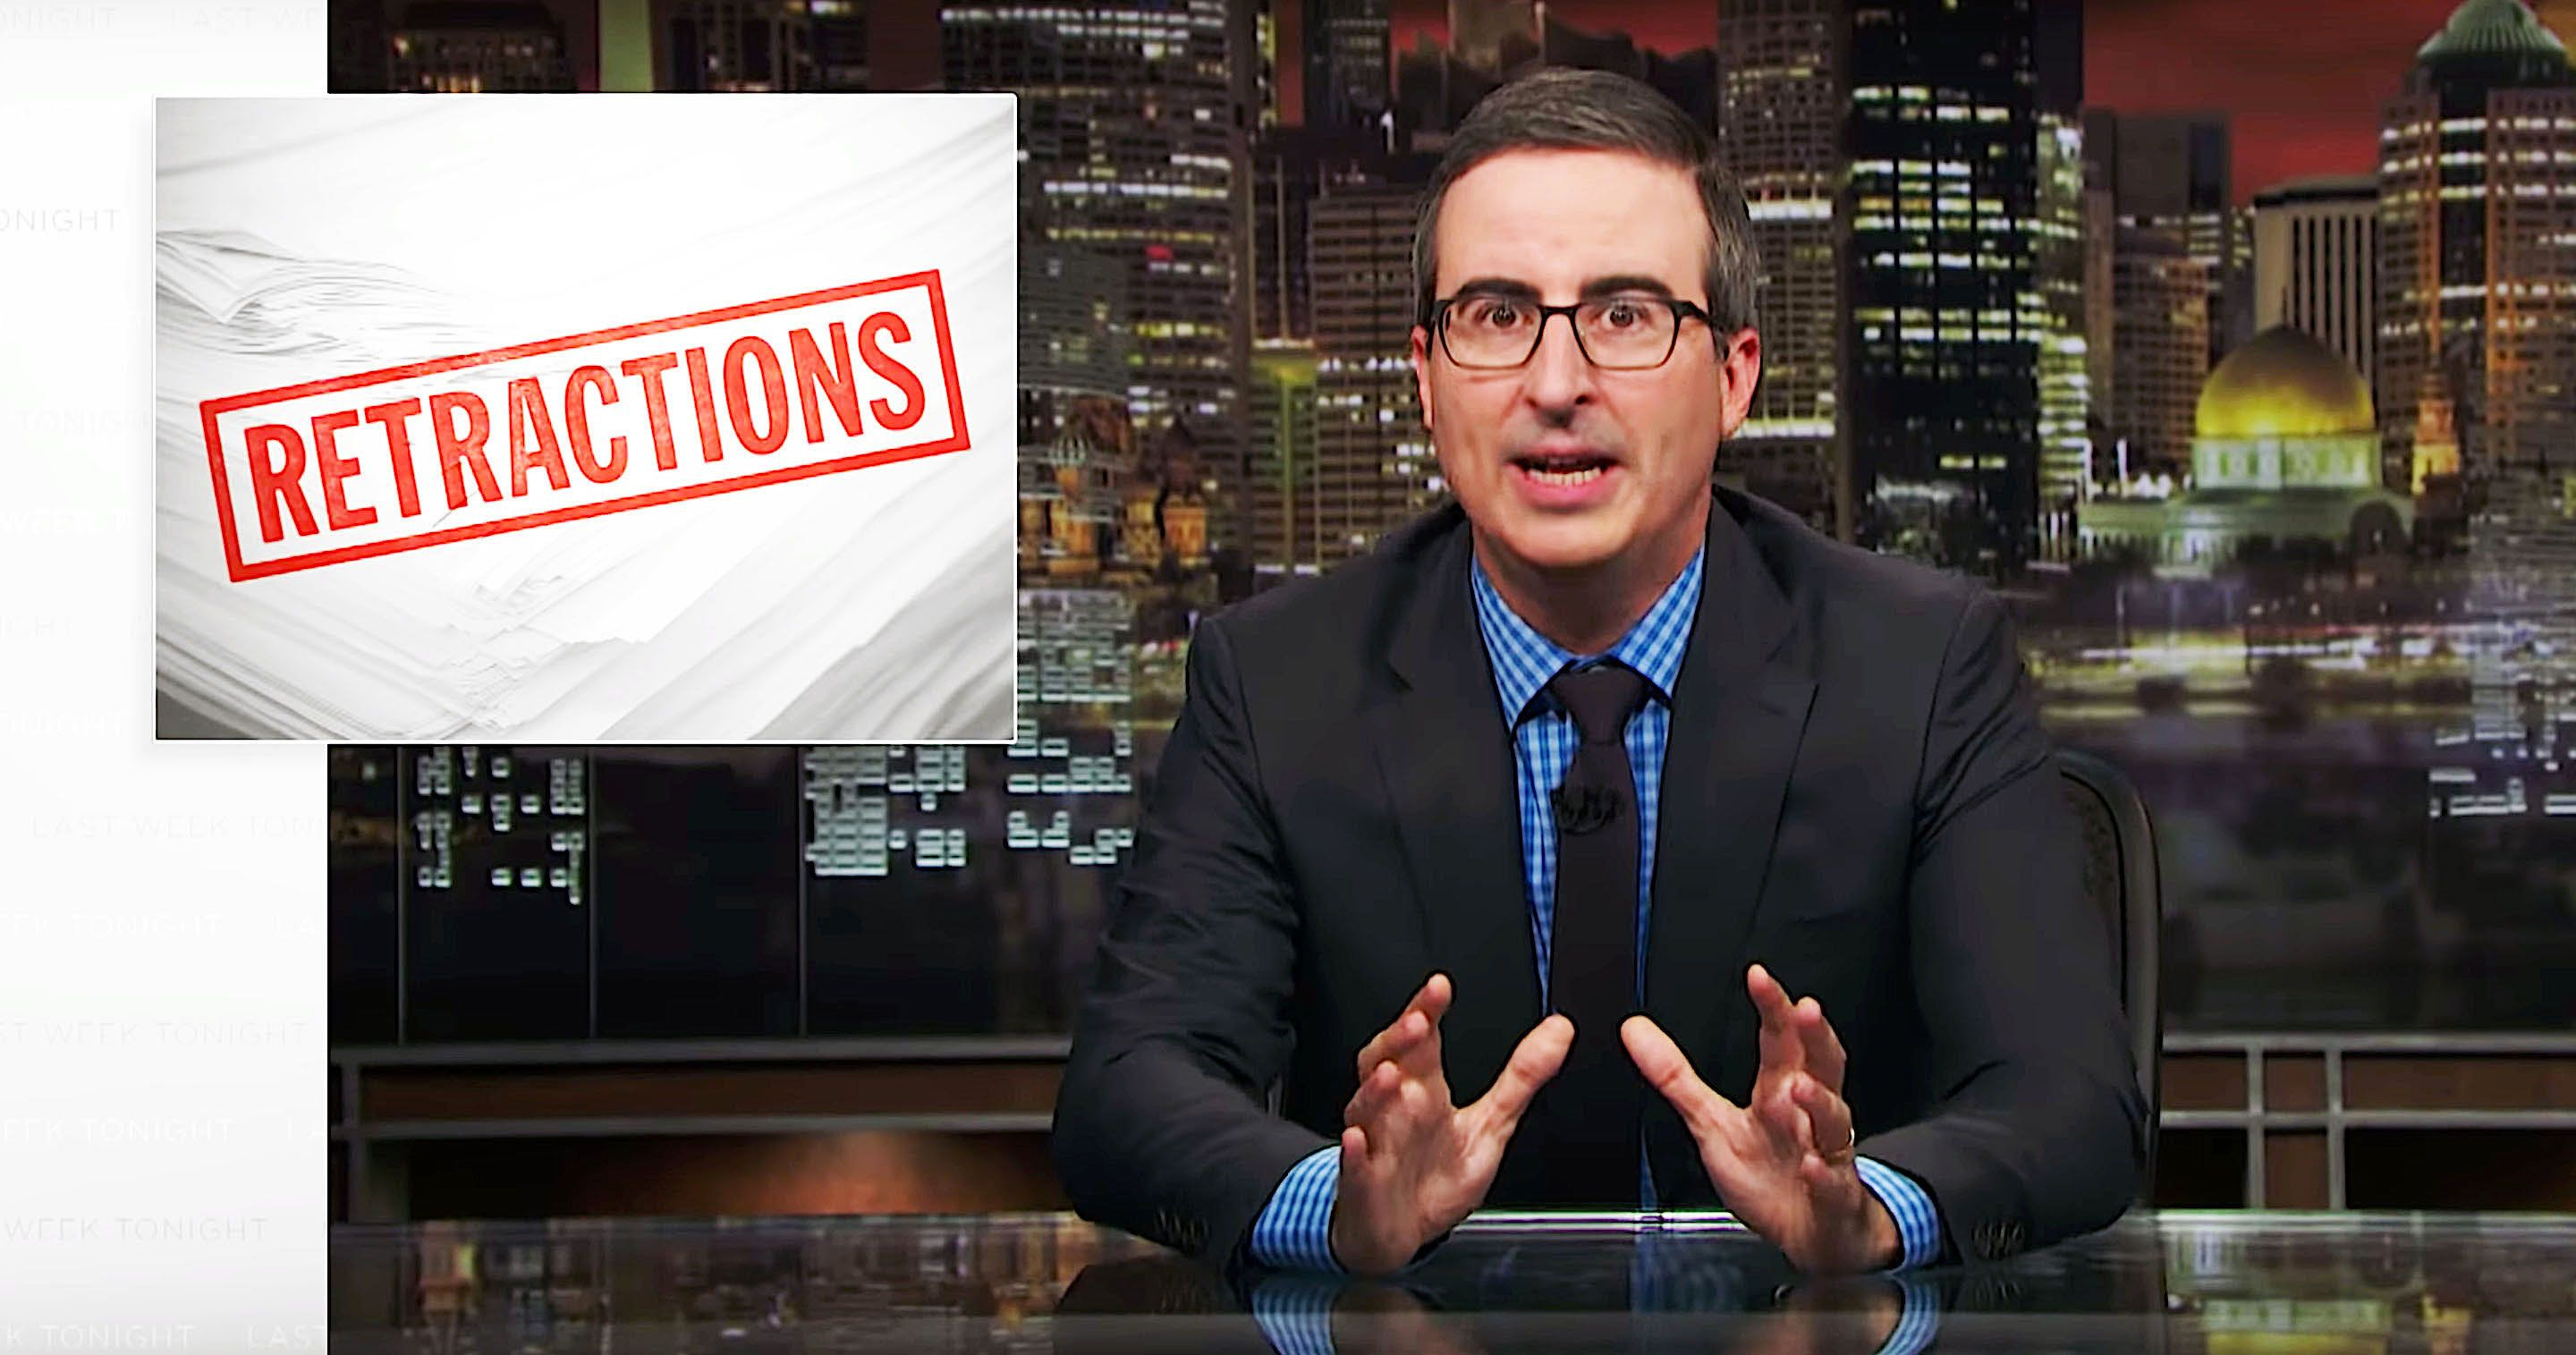 John Oliver Corrects The Record: MySpace Is Not Back